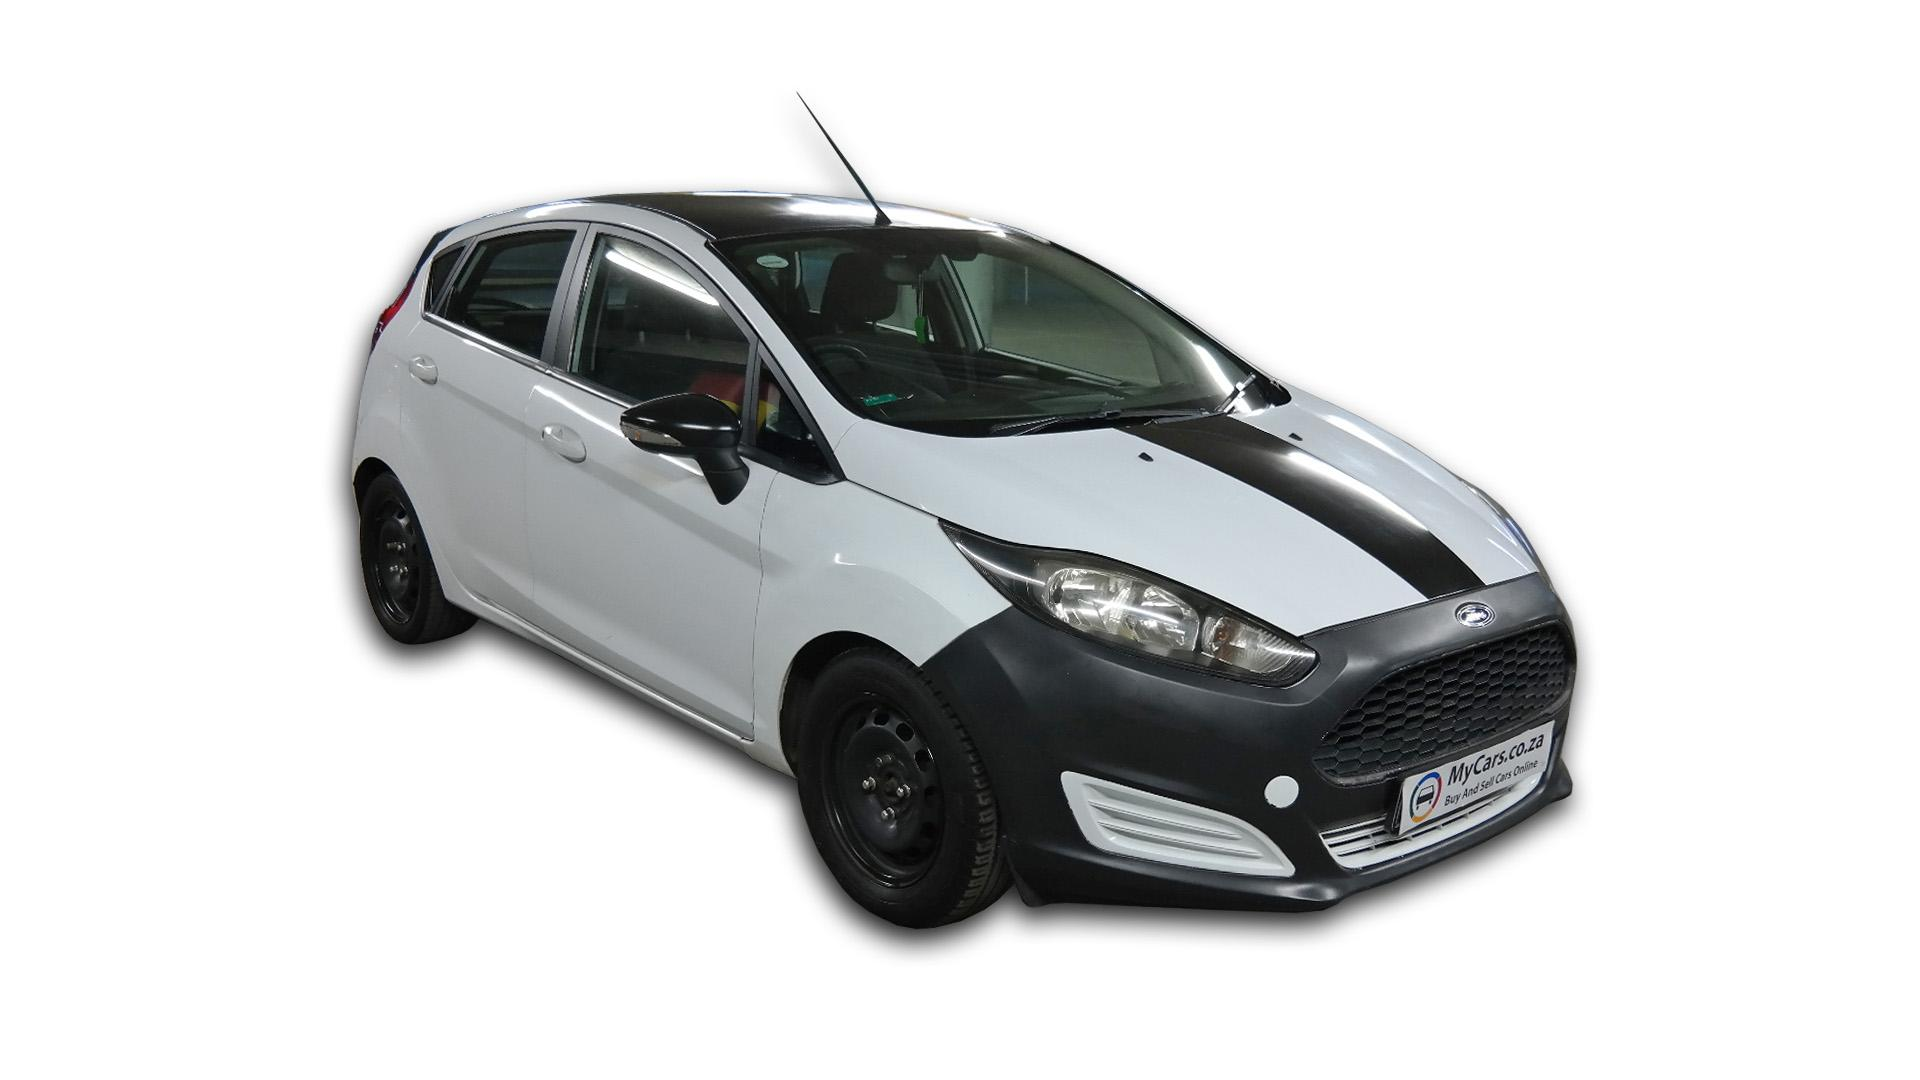 Ford Fiesta 1.4 Ambiente 5DR